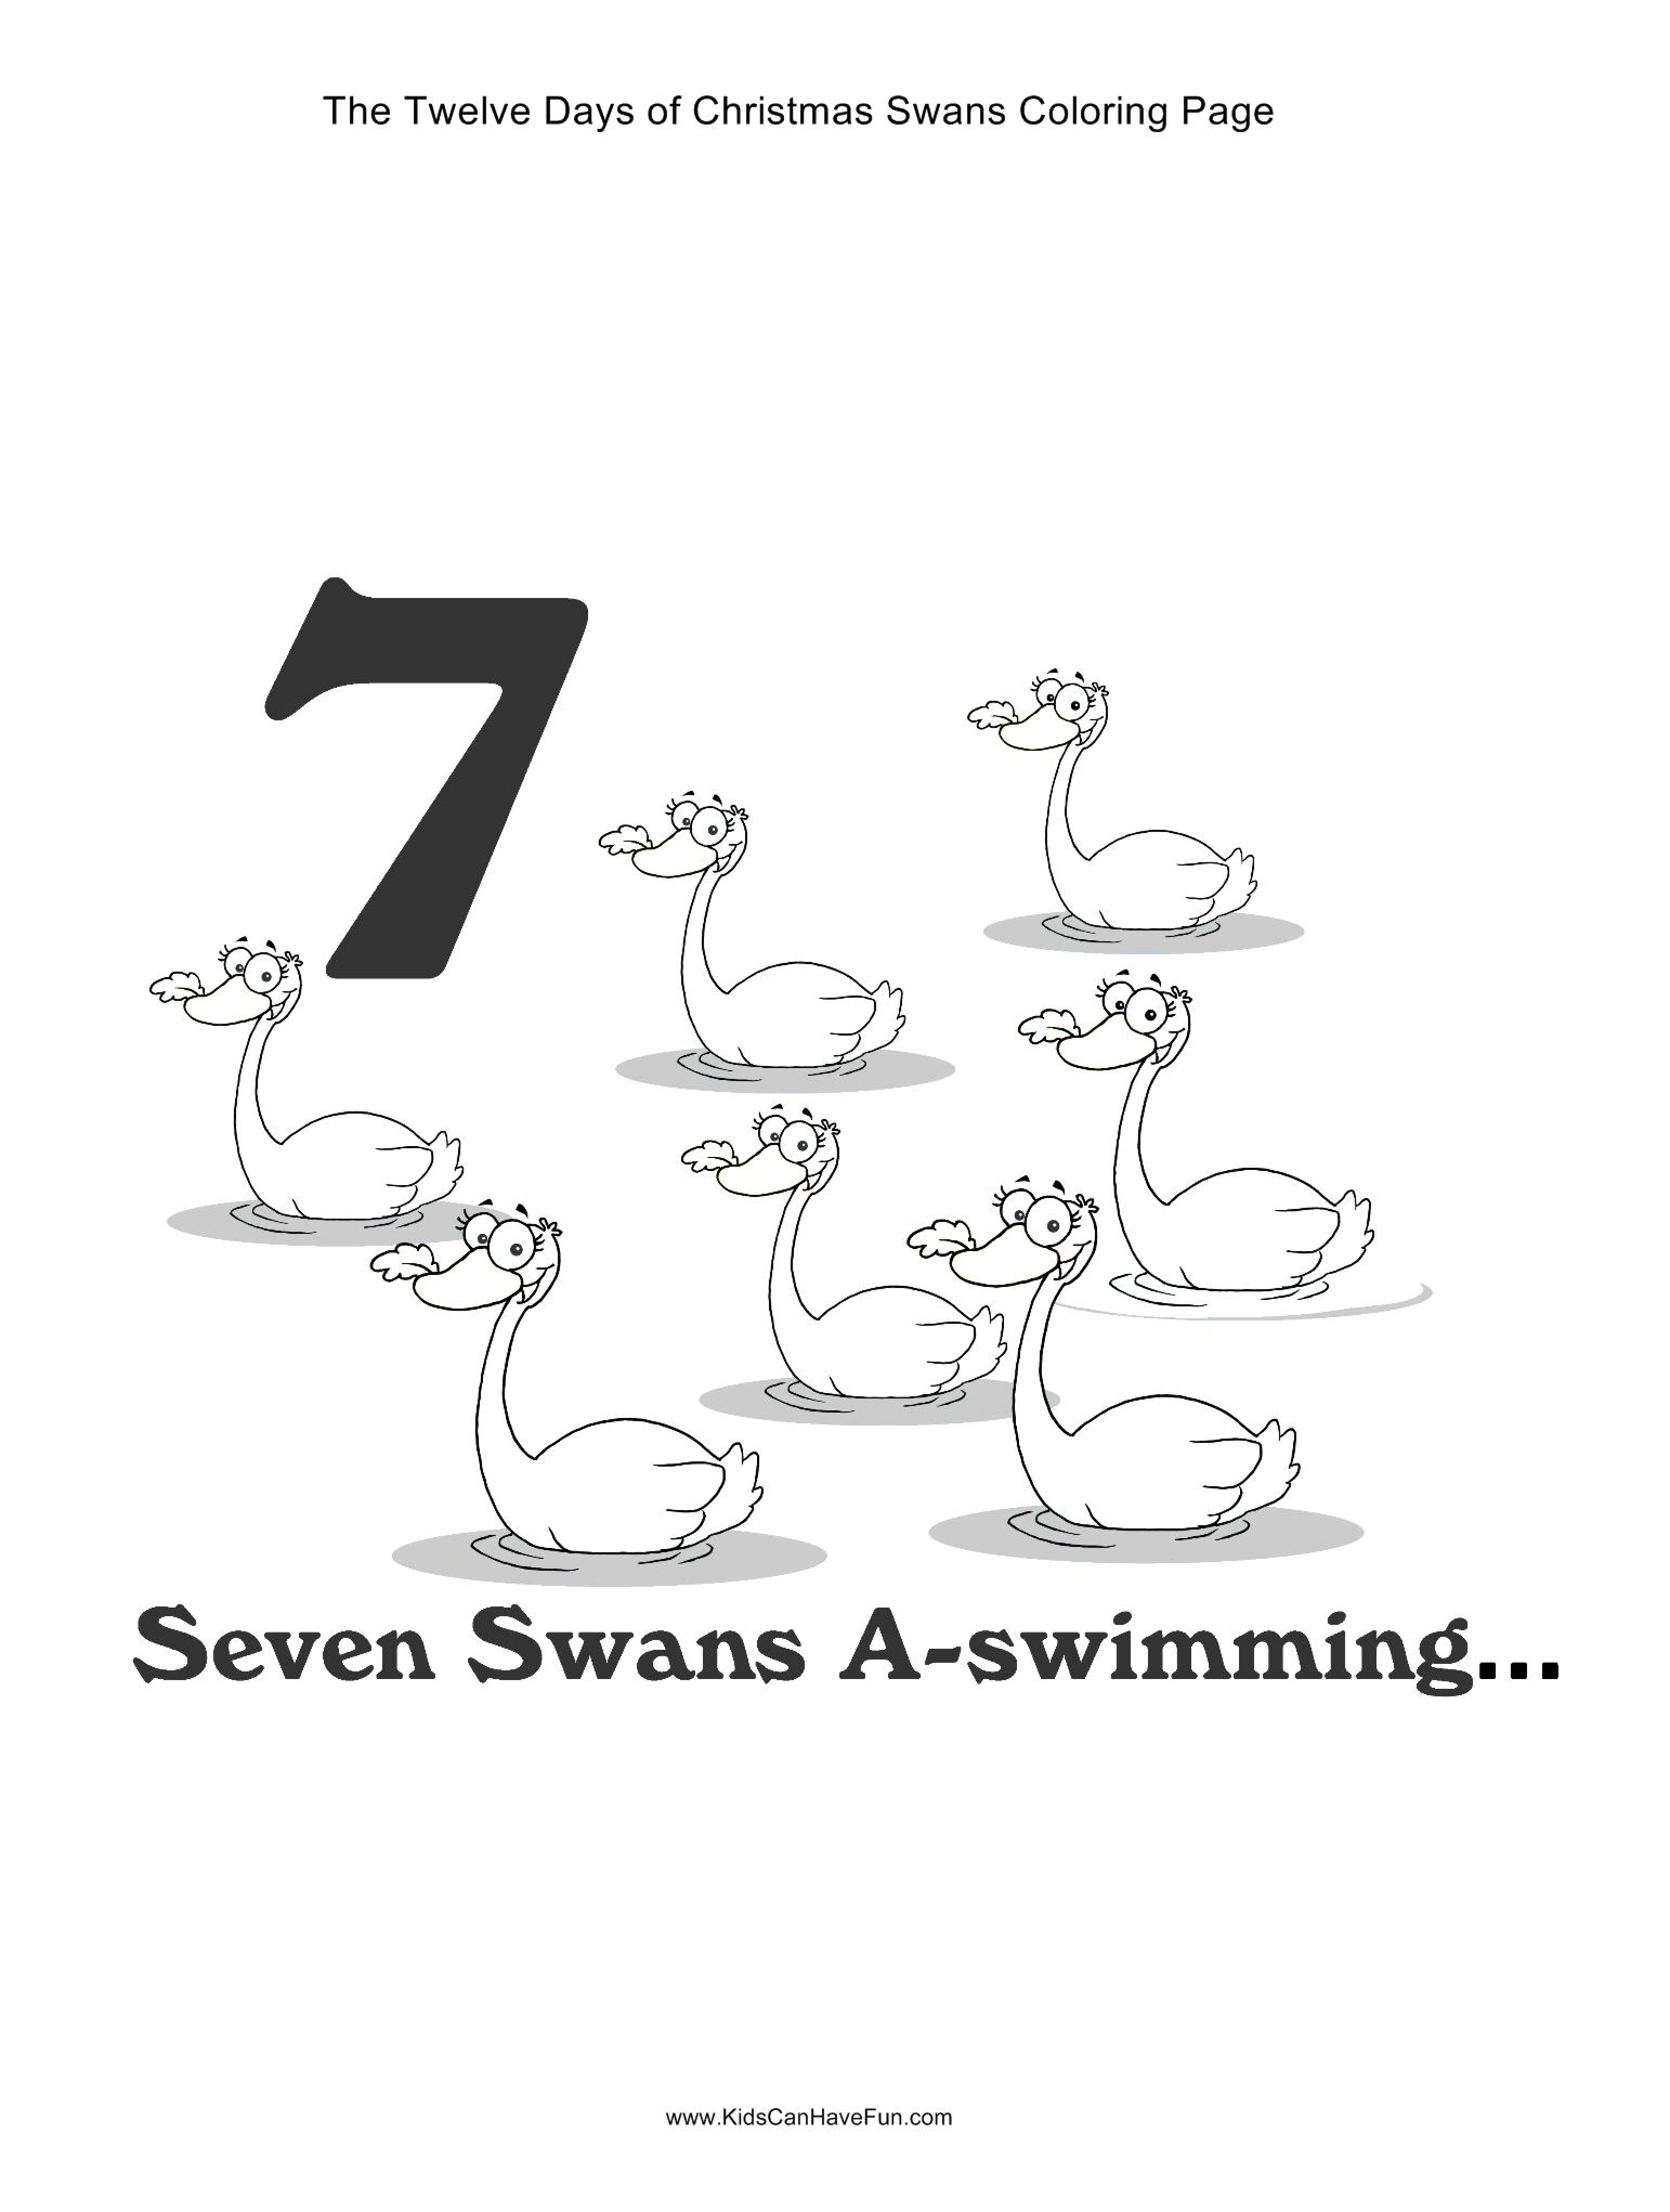 12 Days of Christmas Seven Swans a-swimming coloring page